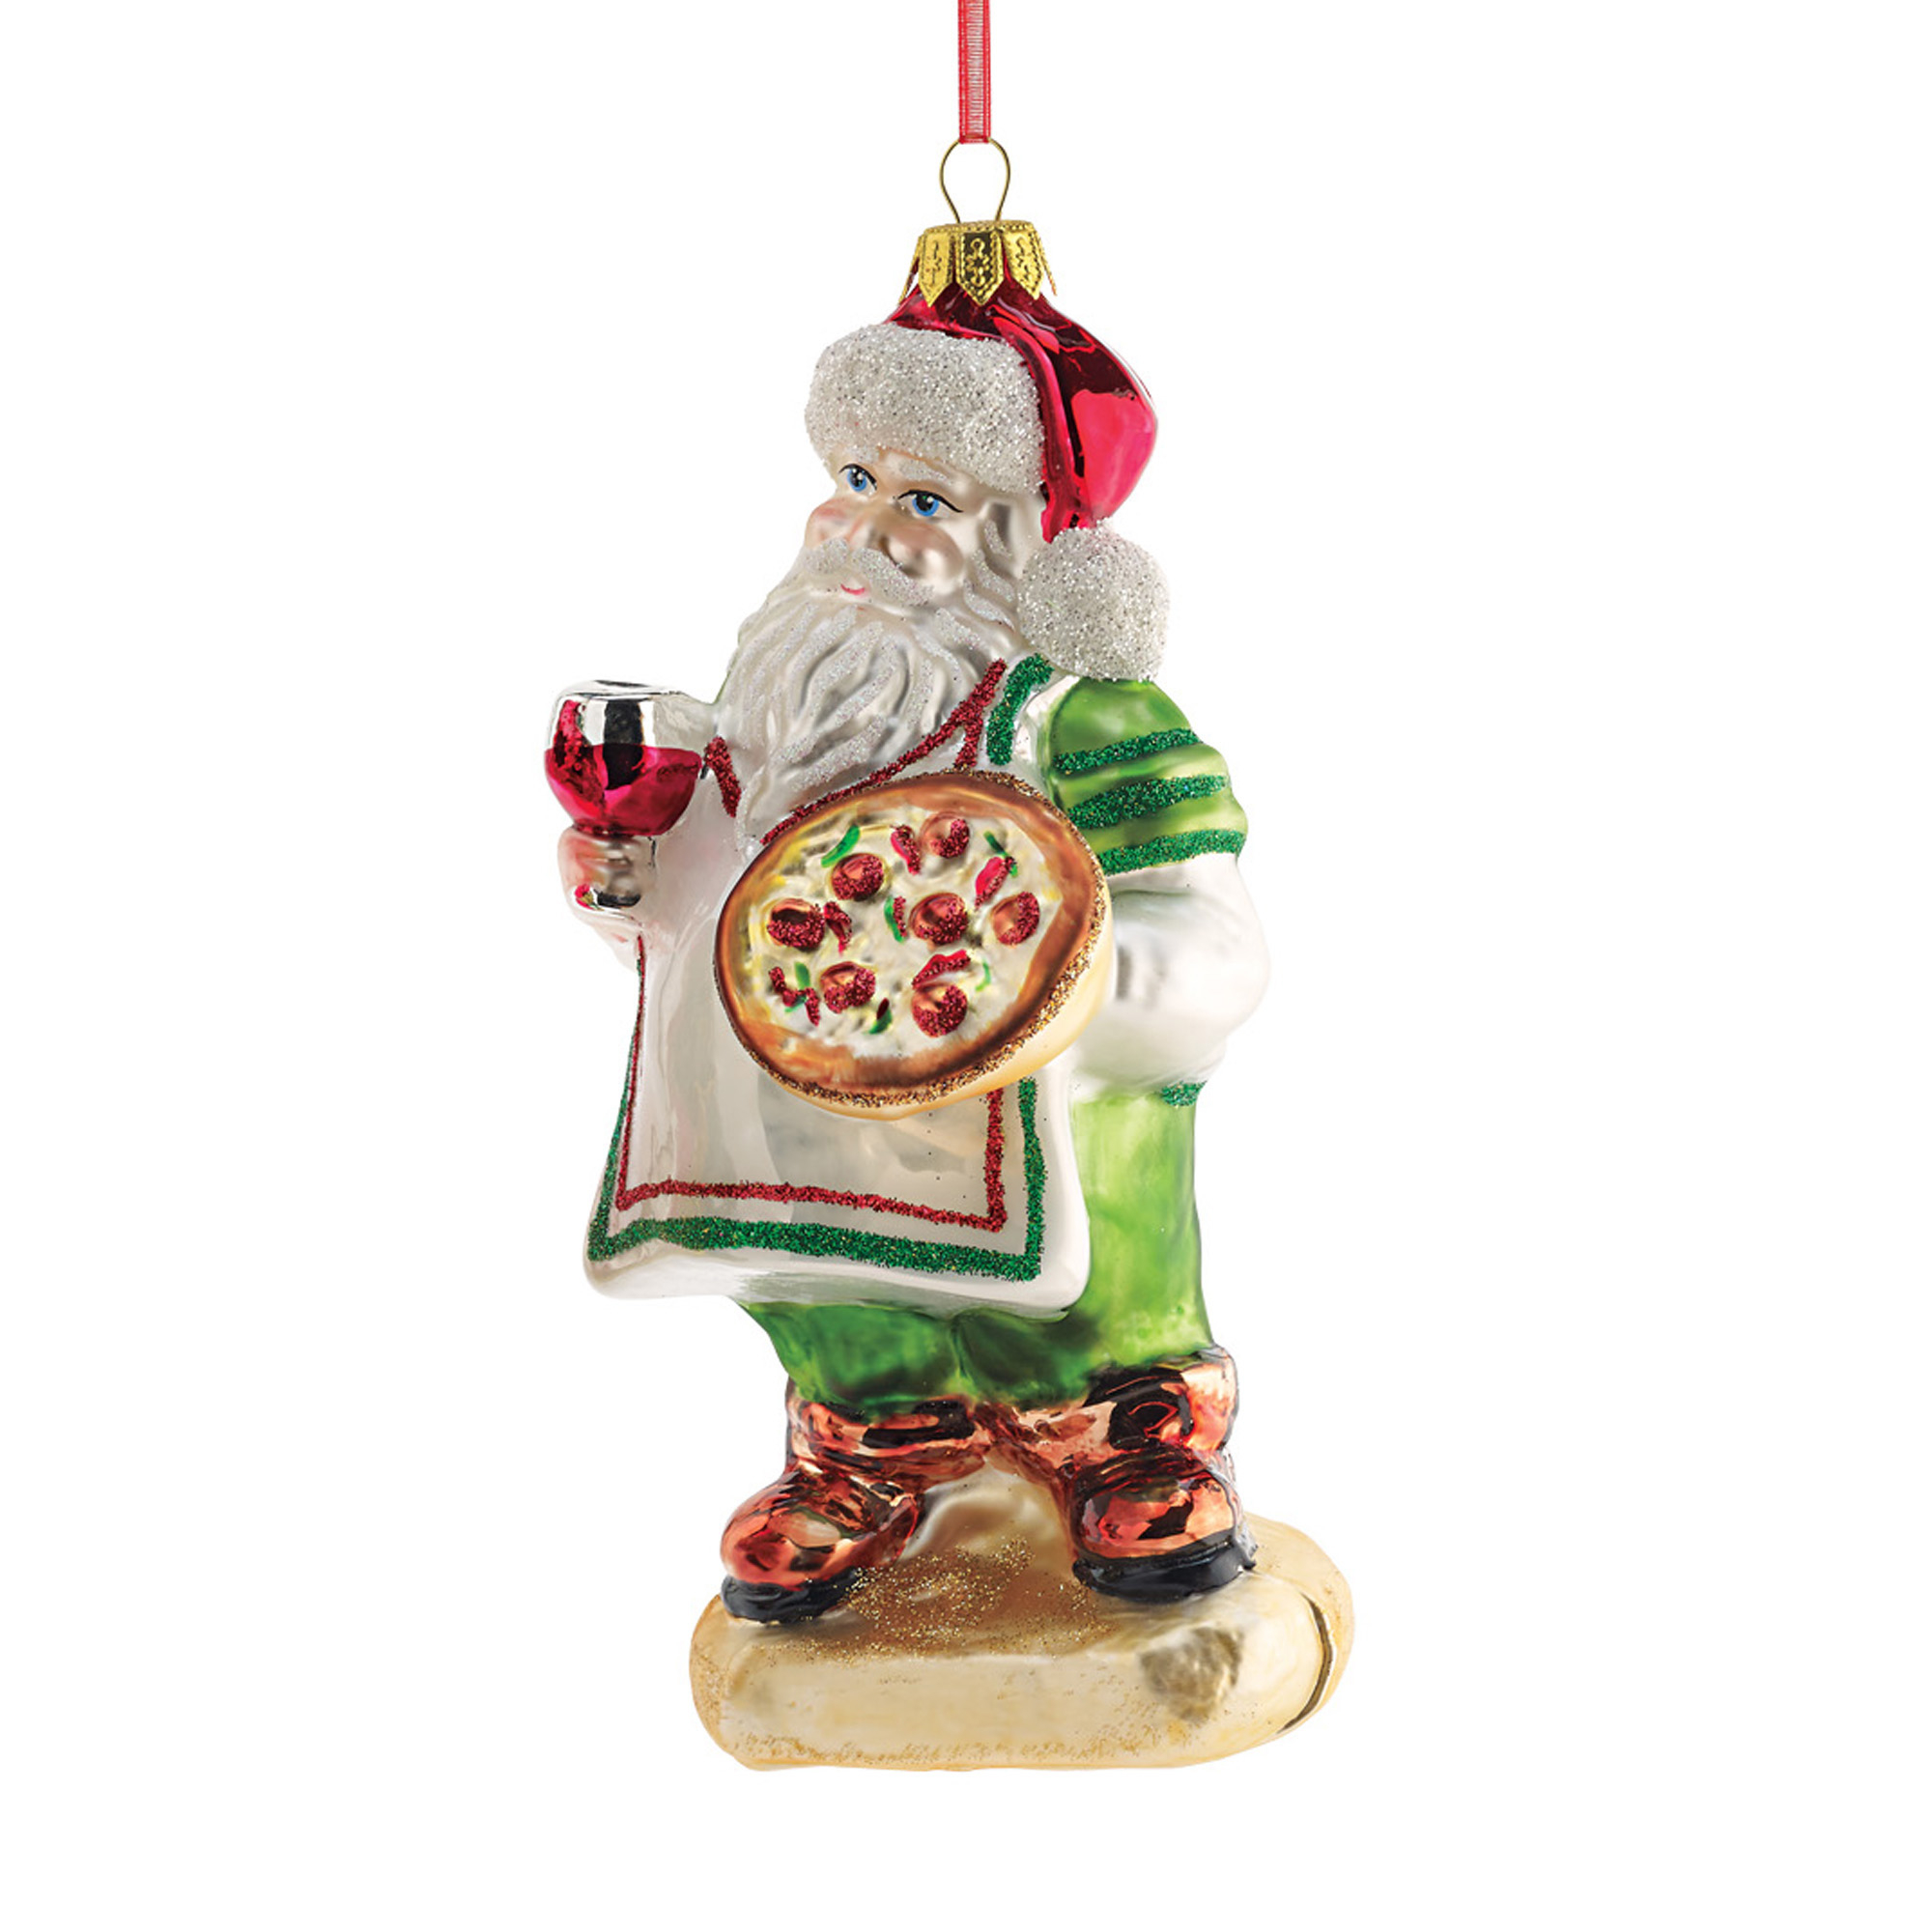 Italian Pizza Santa Christmas Ornament Gumps